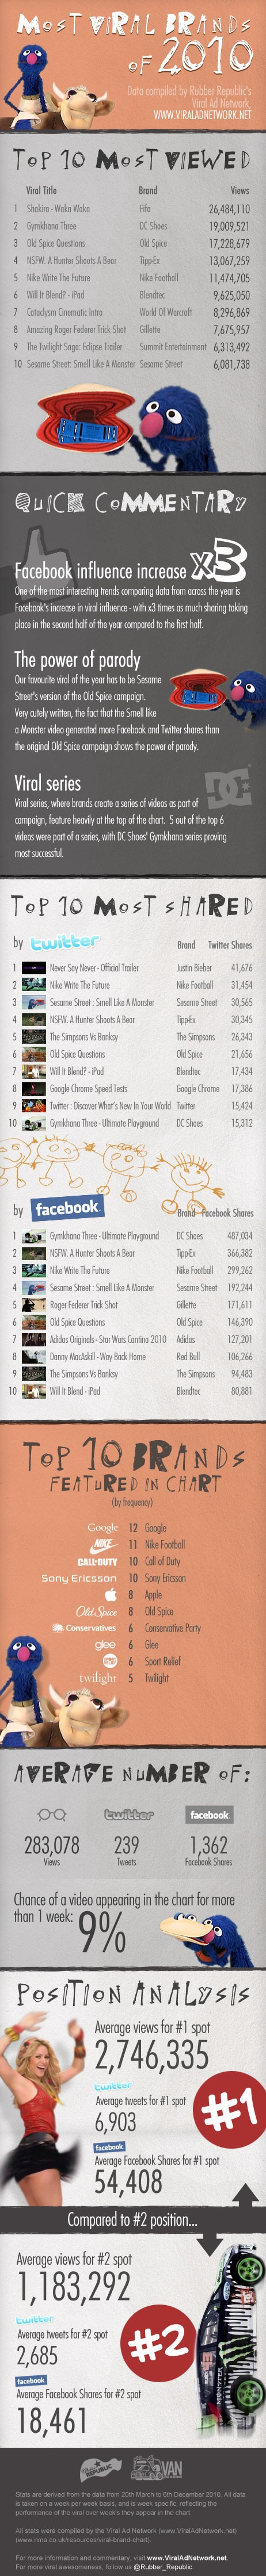 5279974224 c00143aca9 o Most viral brands of 2010 [infographic]